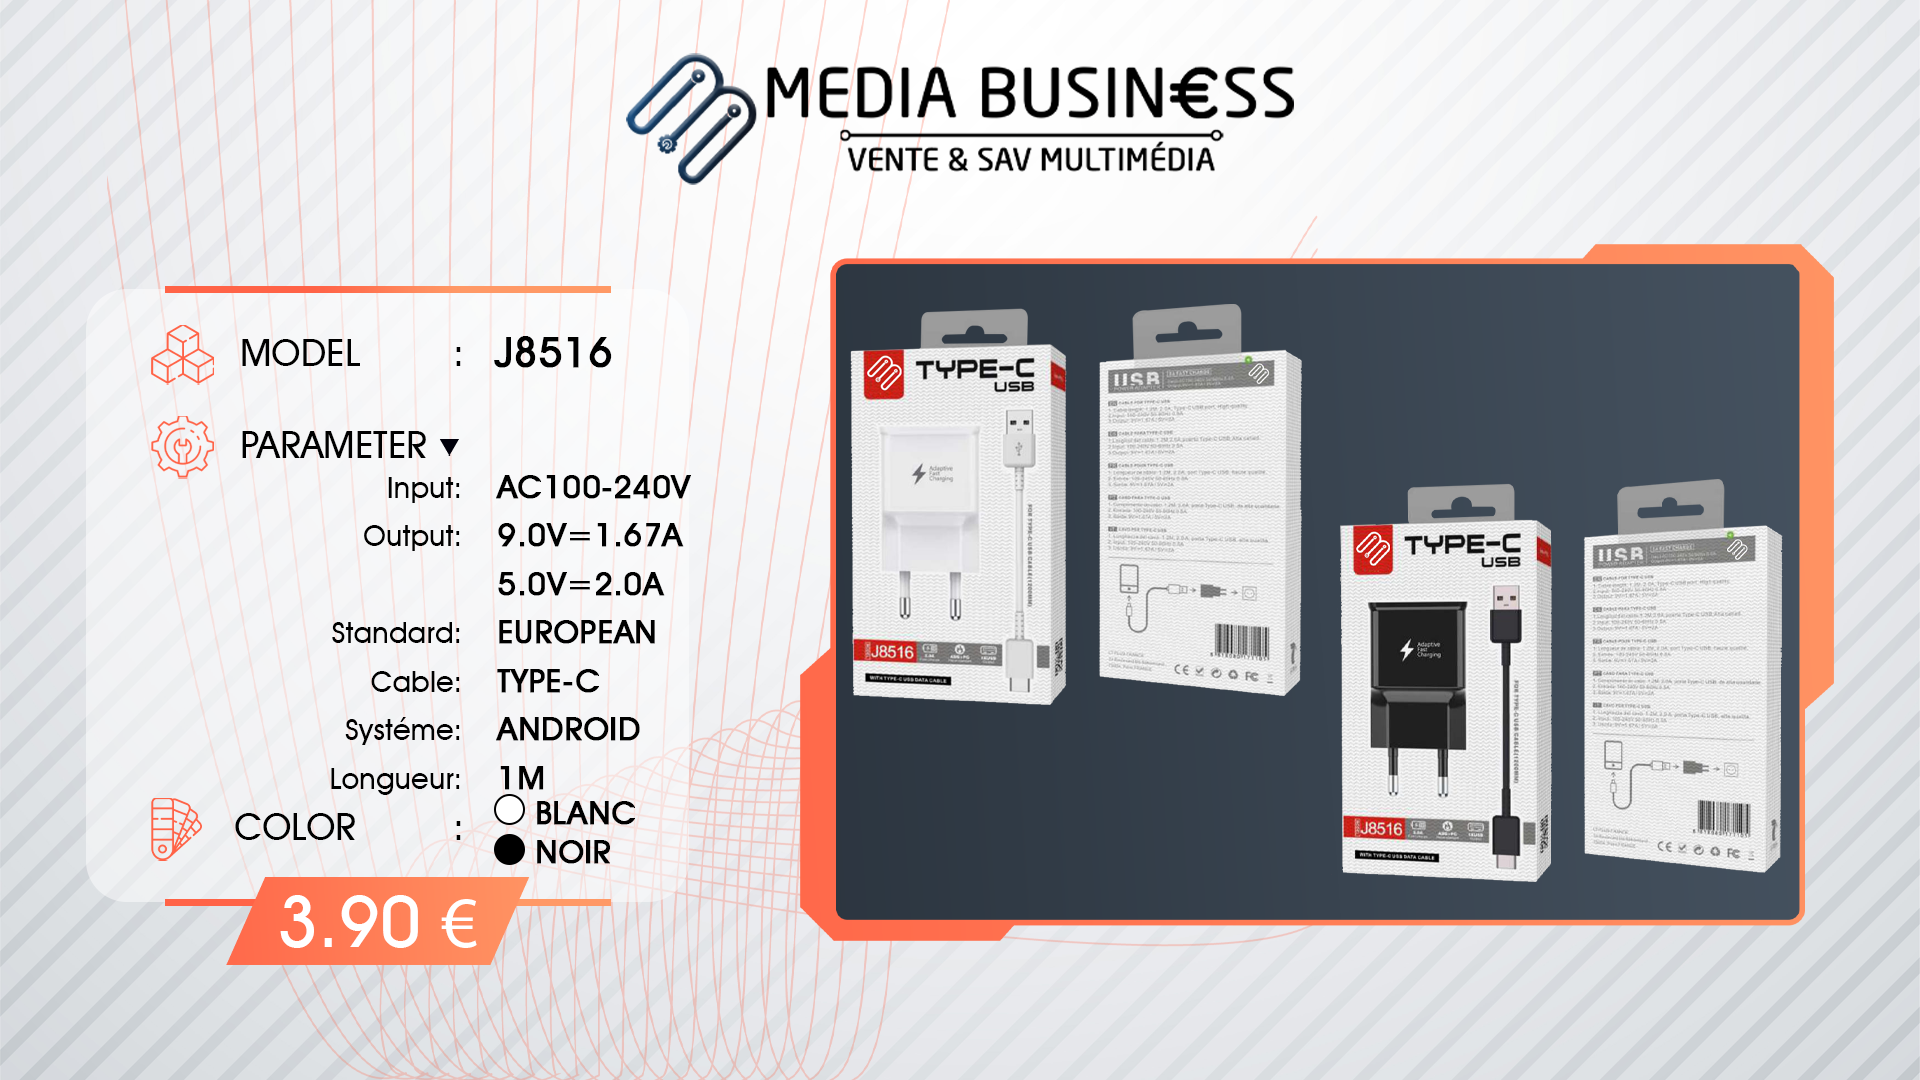 J8516 MEDIA BUSINESS SCHILTIGHEIM